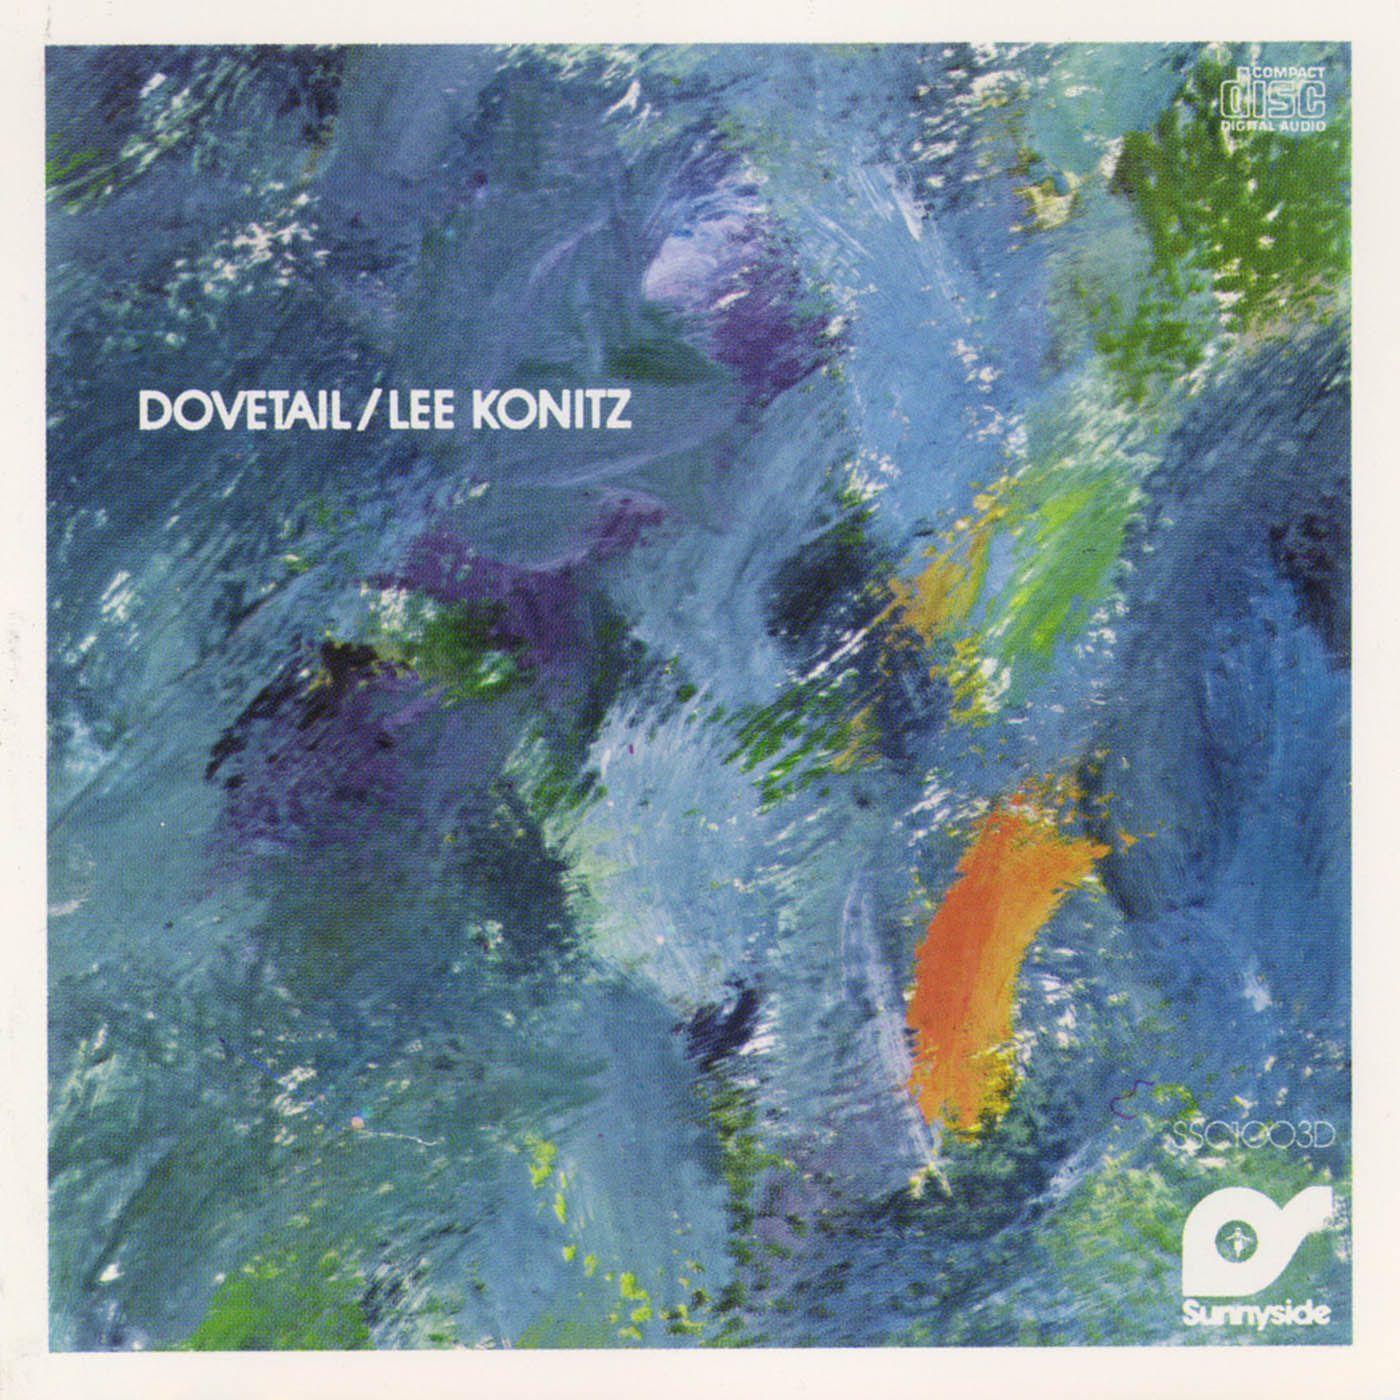 Dovetail by Lee Konitz cover